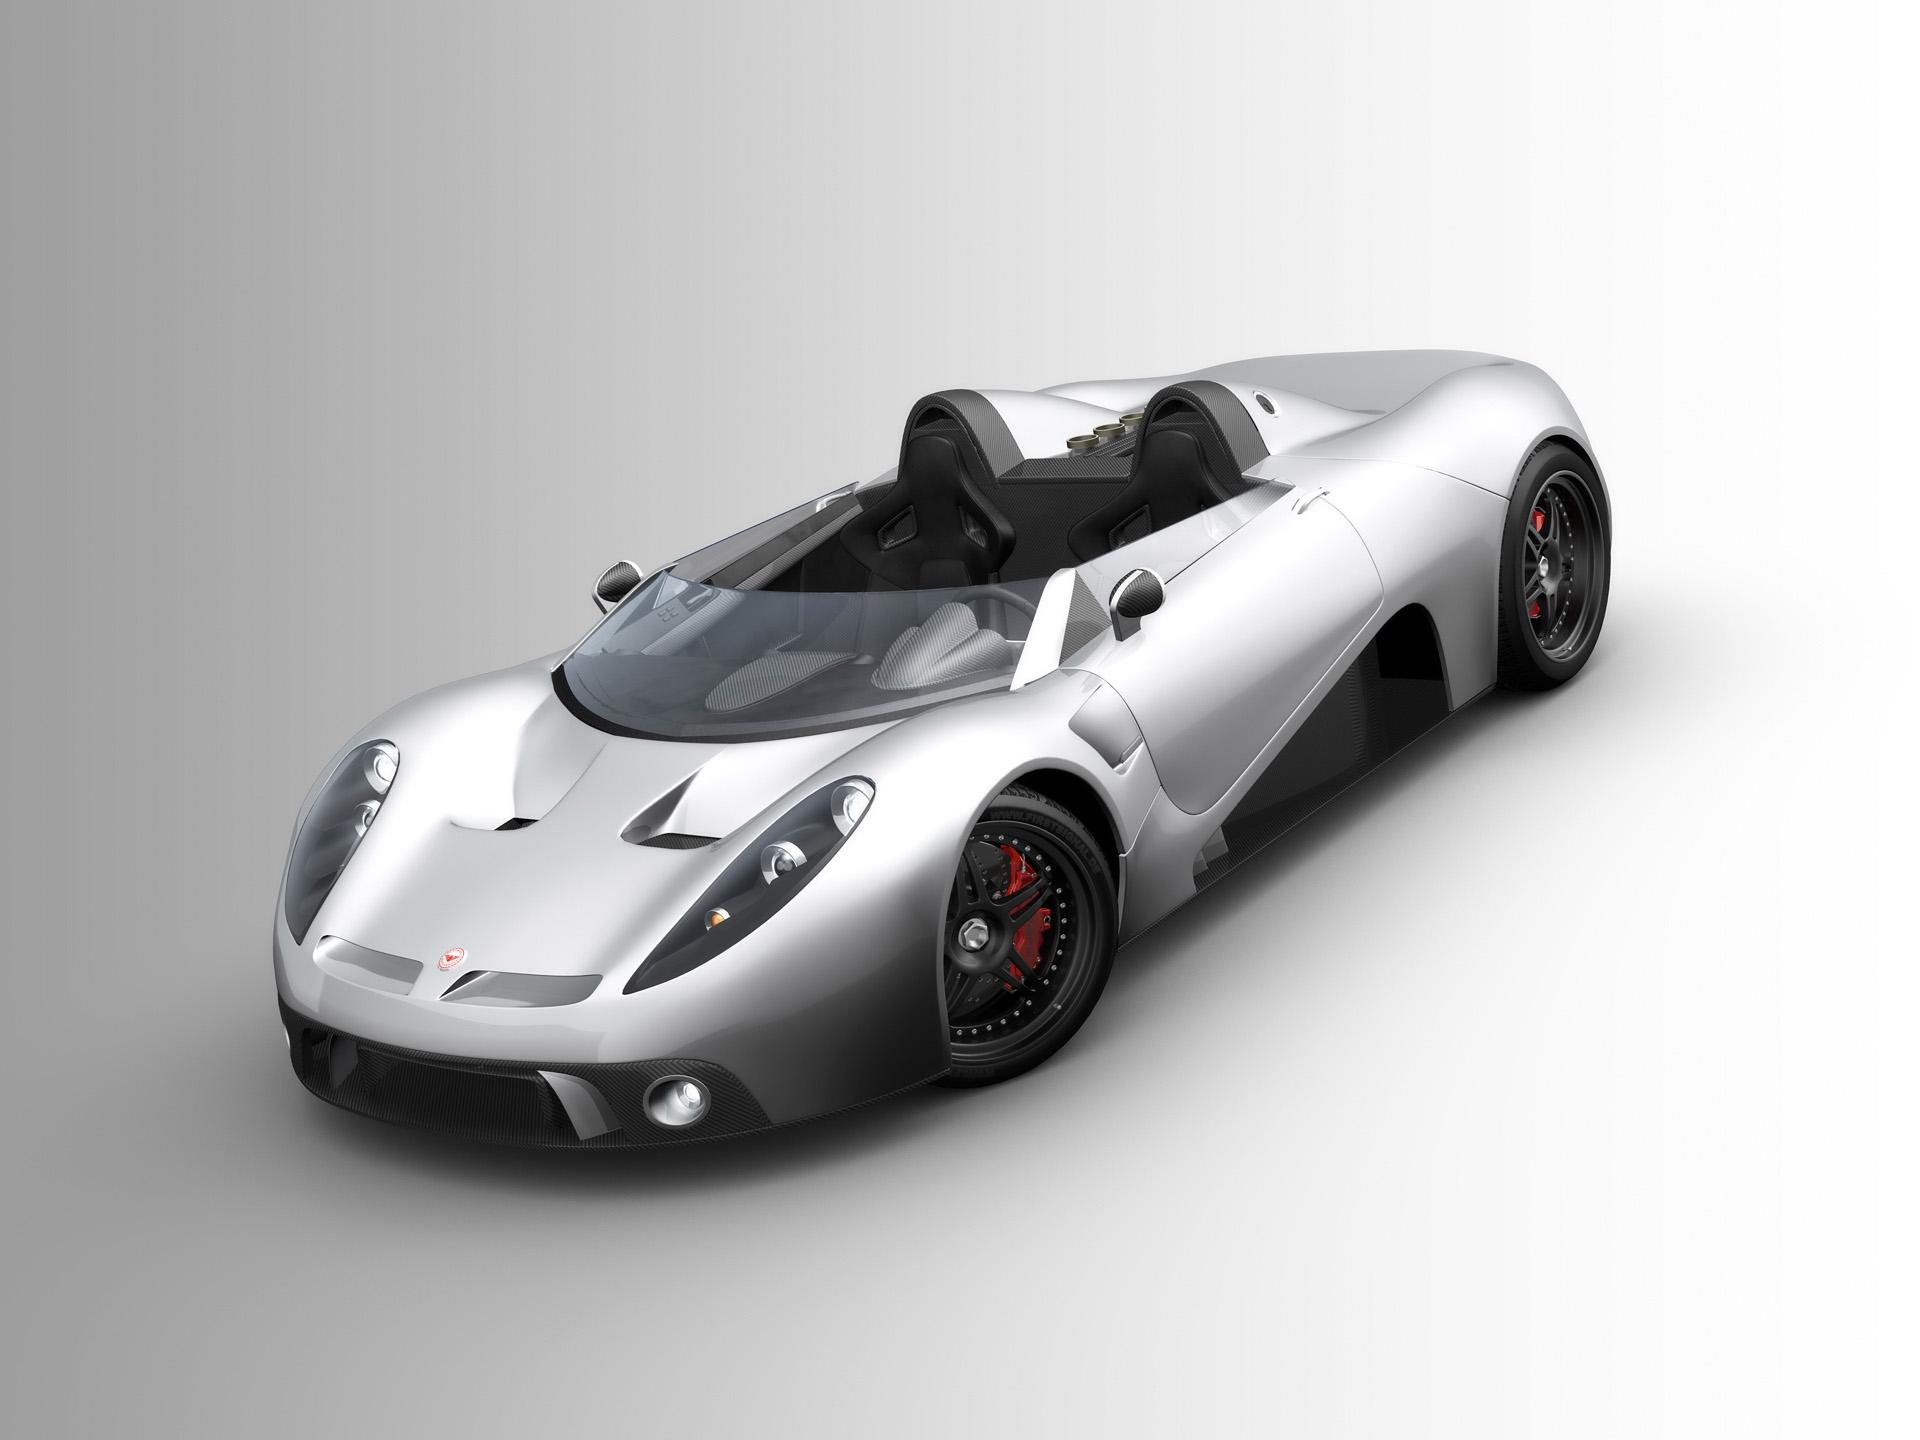 2008 Scuderia Bizzarrini p538 Barchetta Prototype